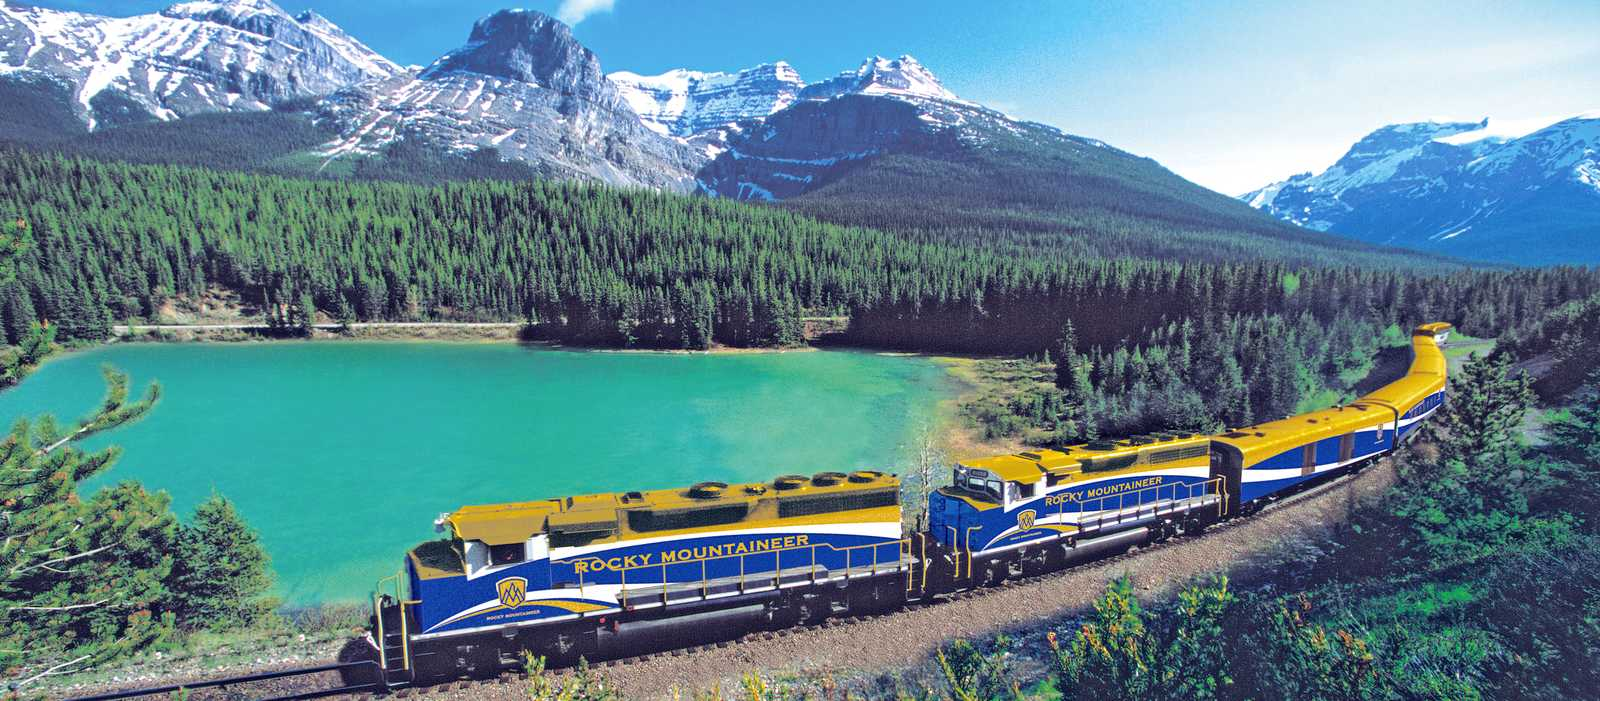 Rocky Mountaineer Zug unterwegs im Kicking Horse Pass